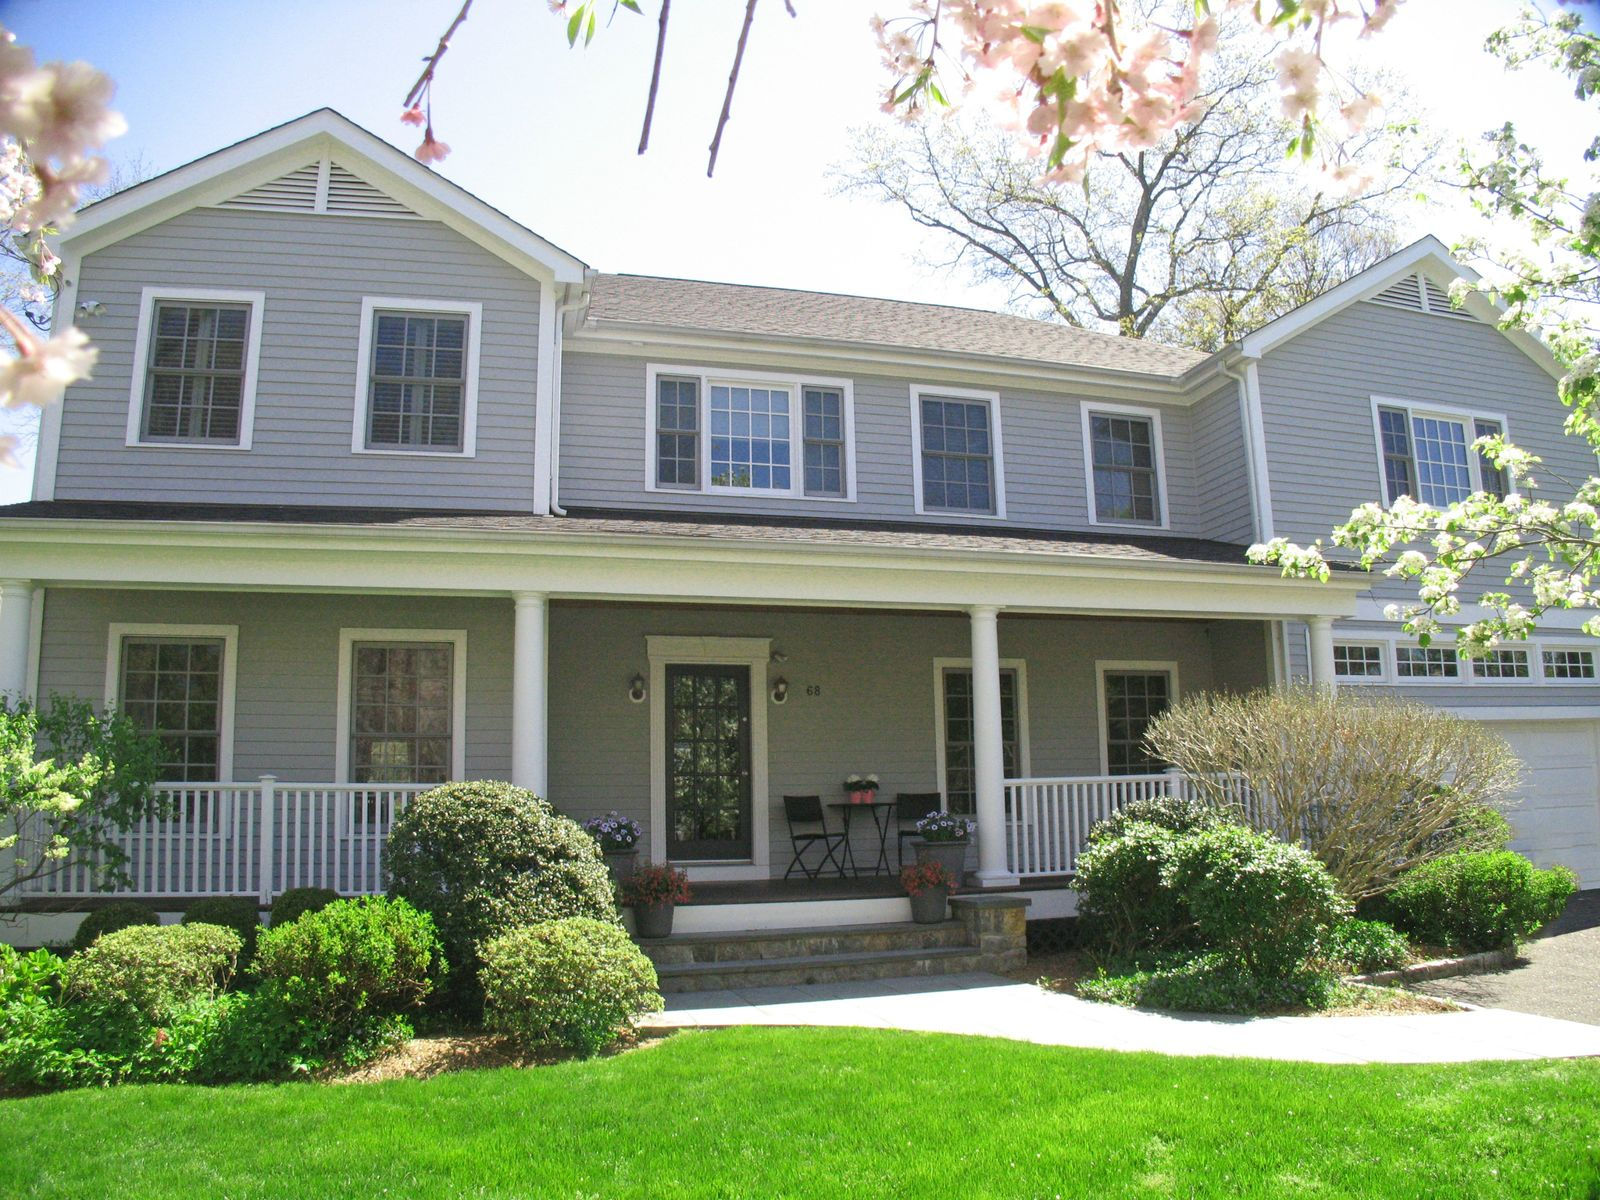 Old Greenwich Perfection, Old Greenwich CT Single Family Home - Greenwich Real Estate